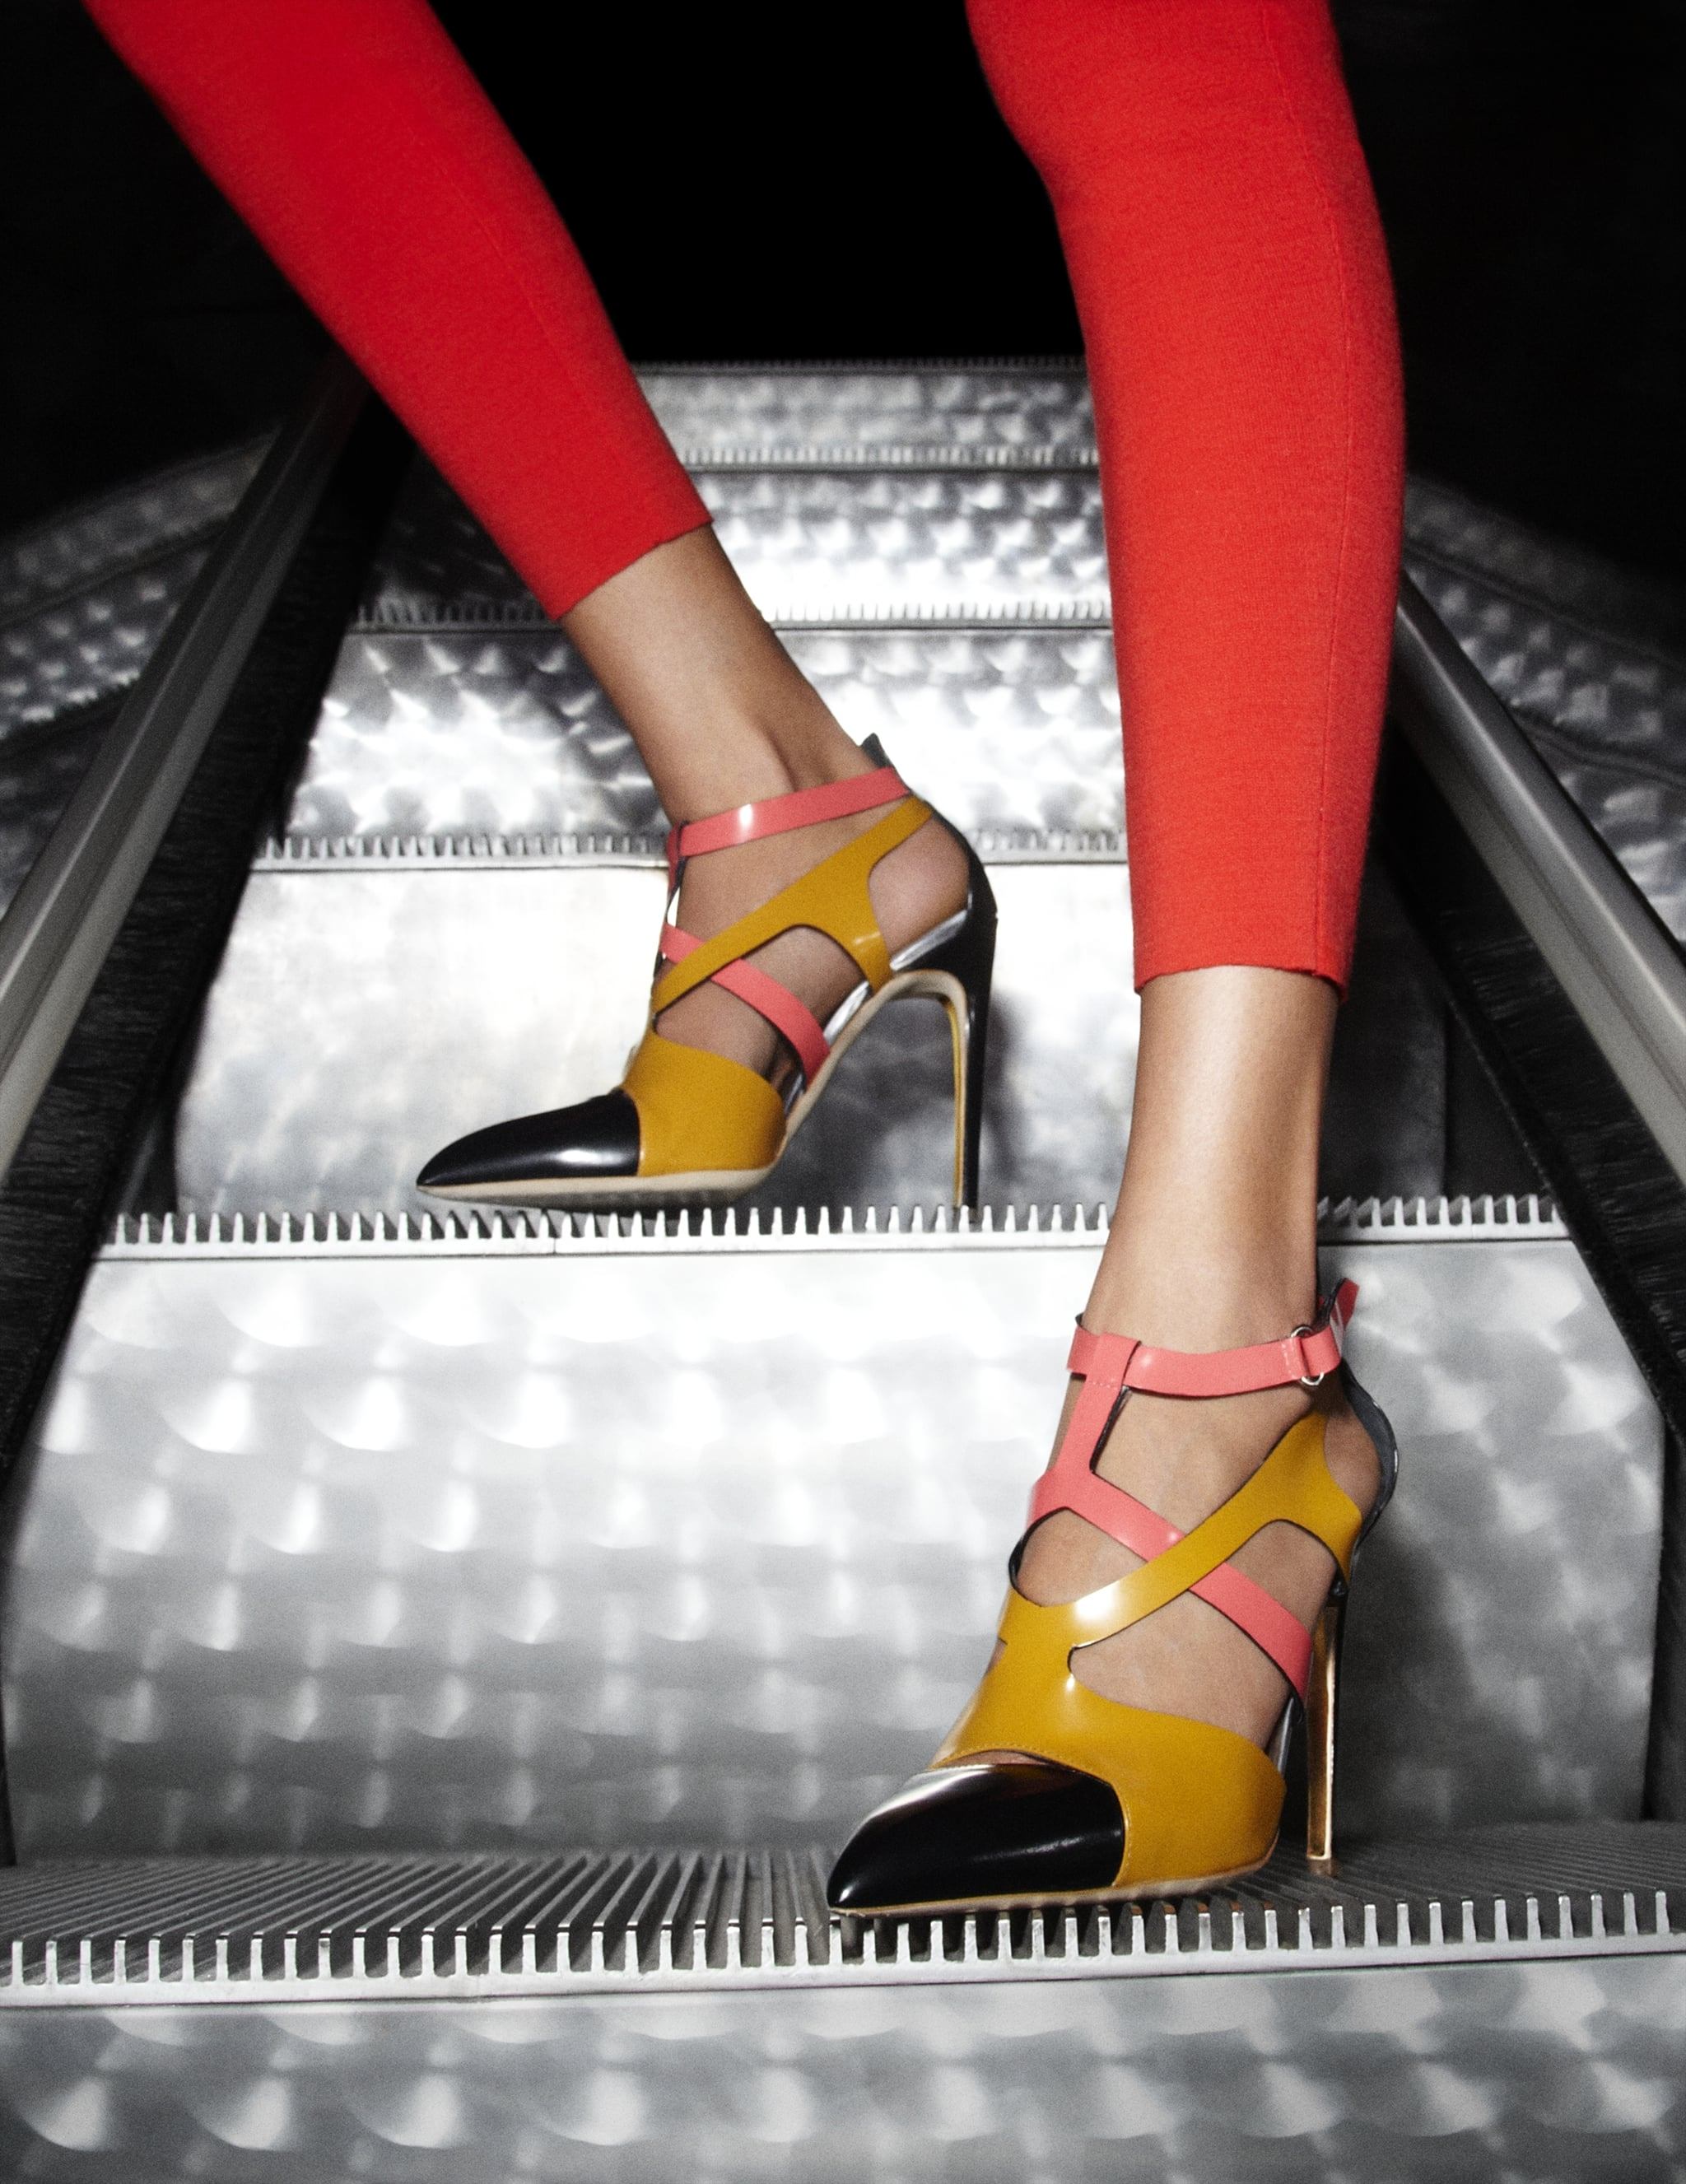 Between the strappy Moiki pumps, red pants, and glistening escalator, this is one hot shot. Photos courtesy of Rupert Sanderson